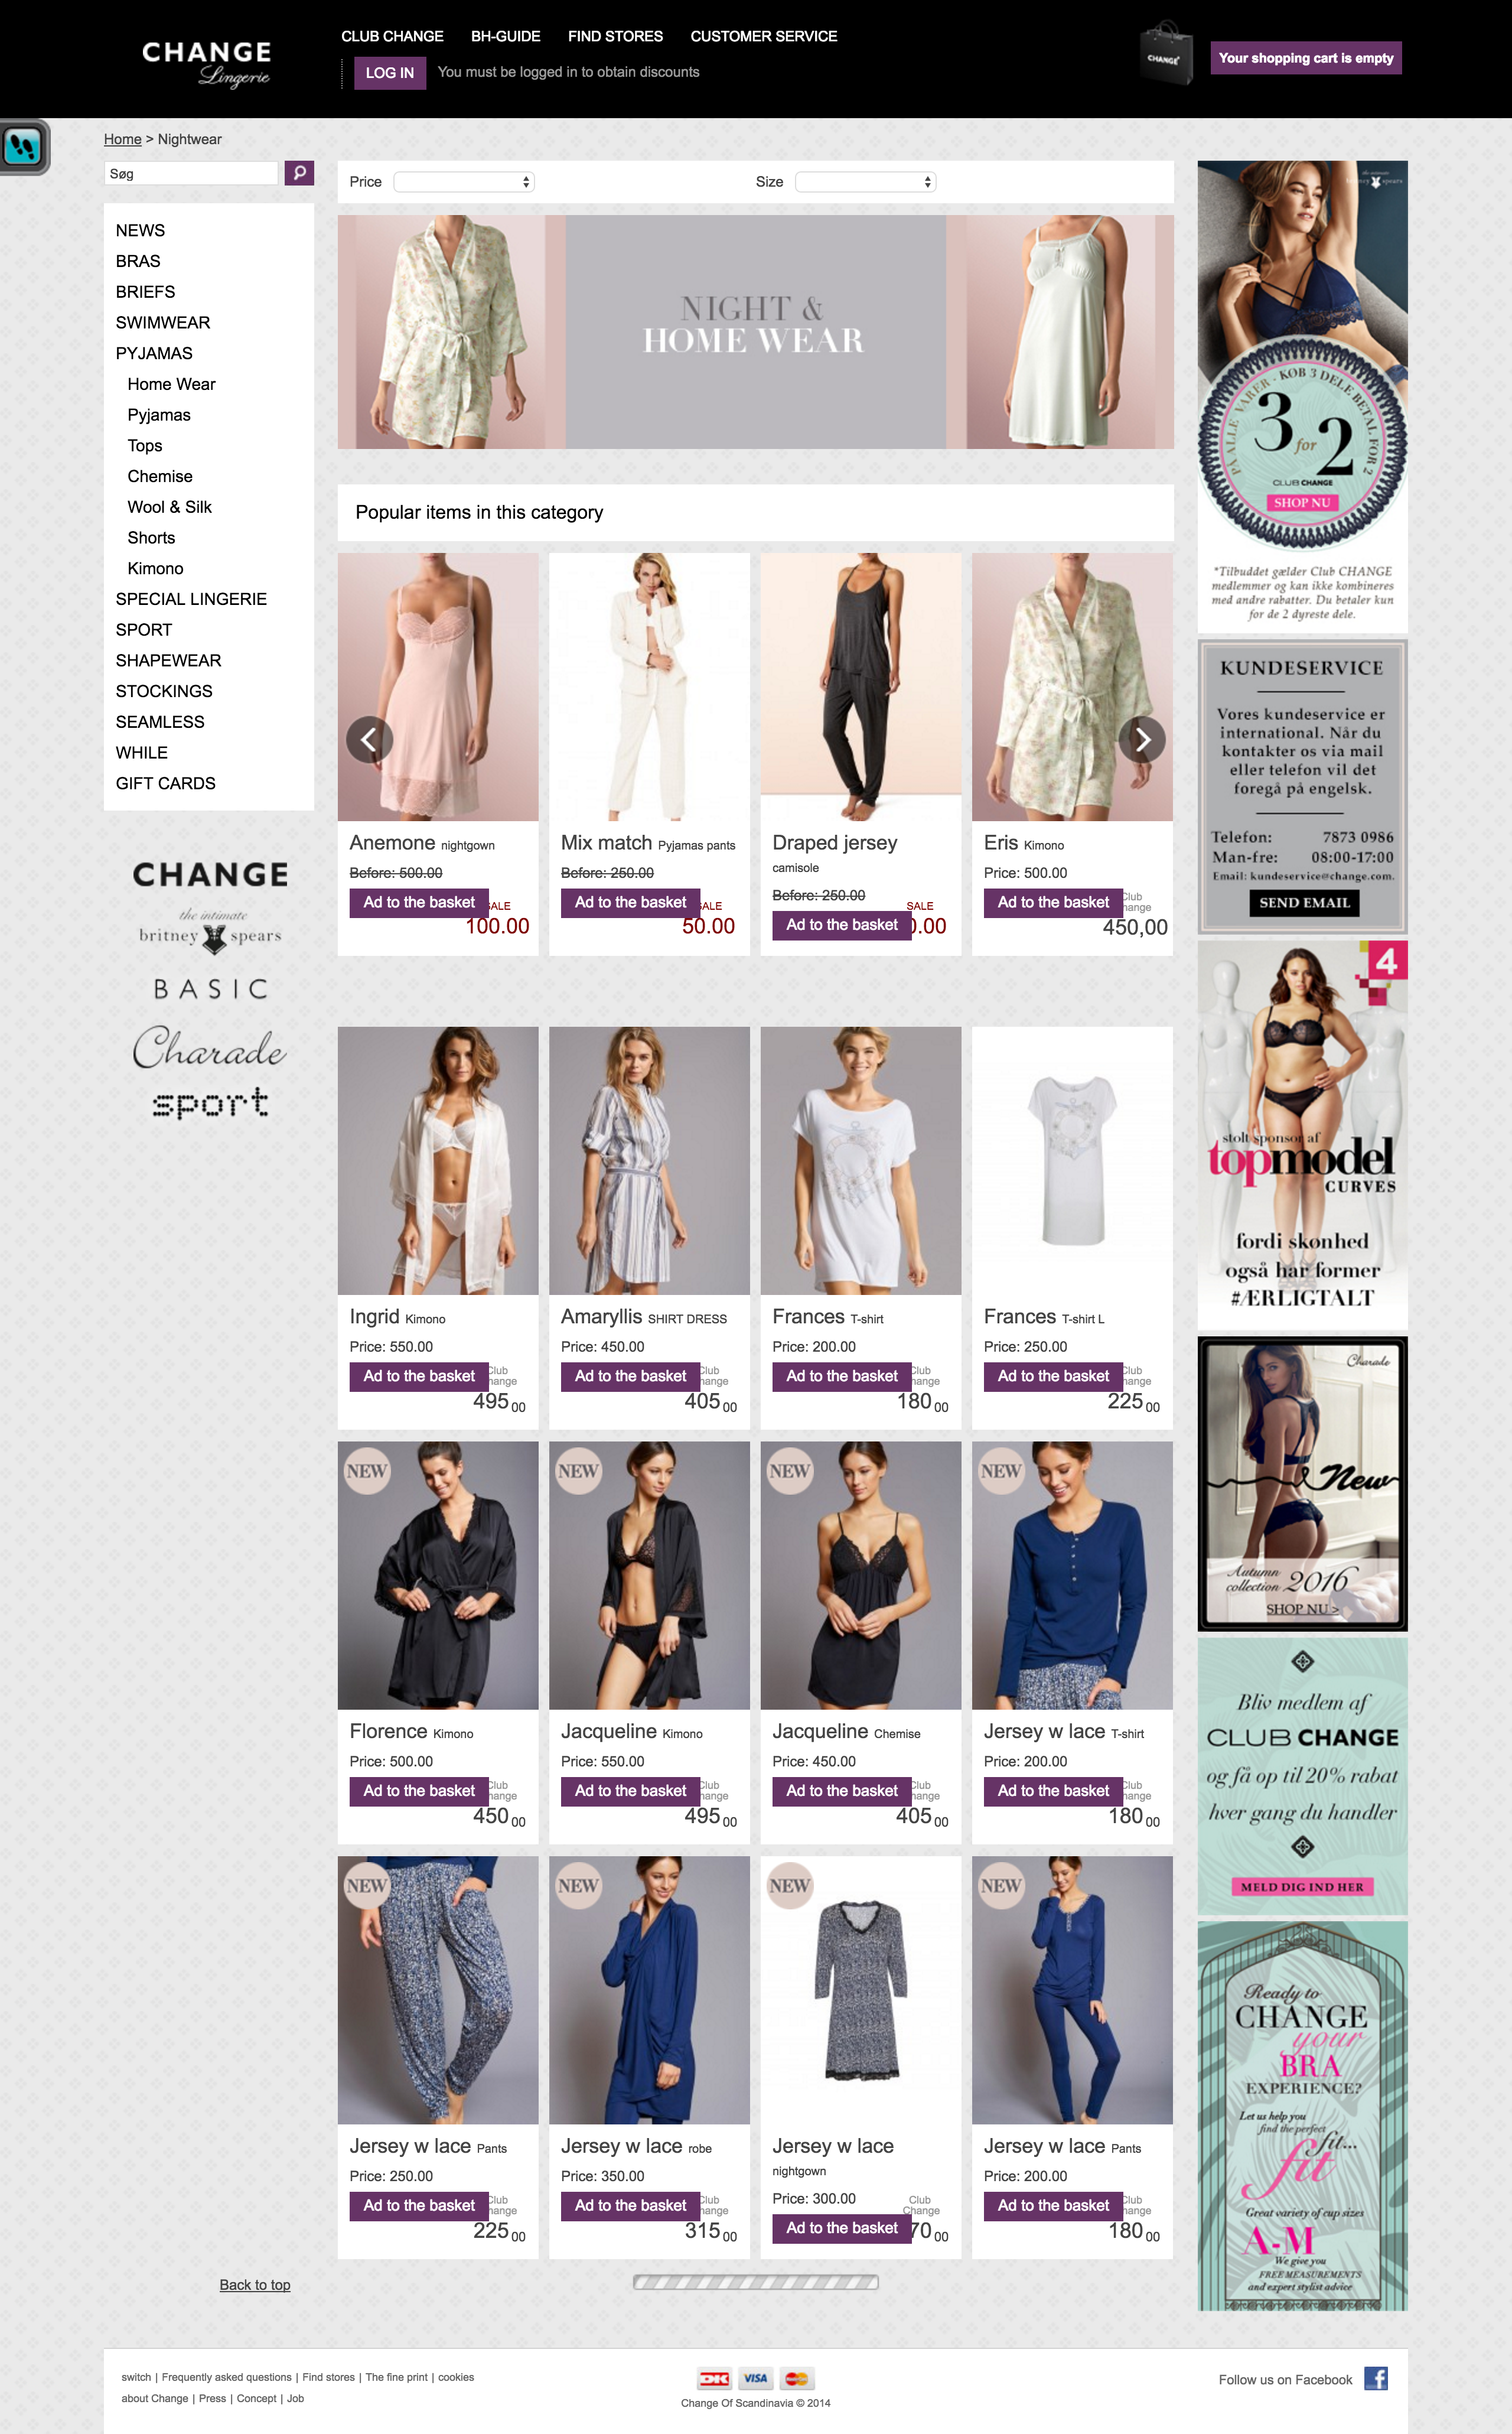 Change.com category page with recommendations for the most popular products displayed at the very top.